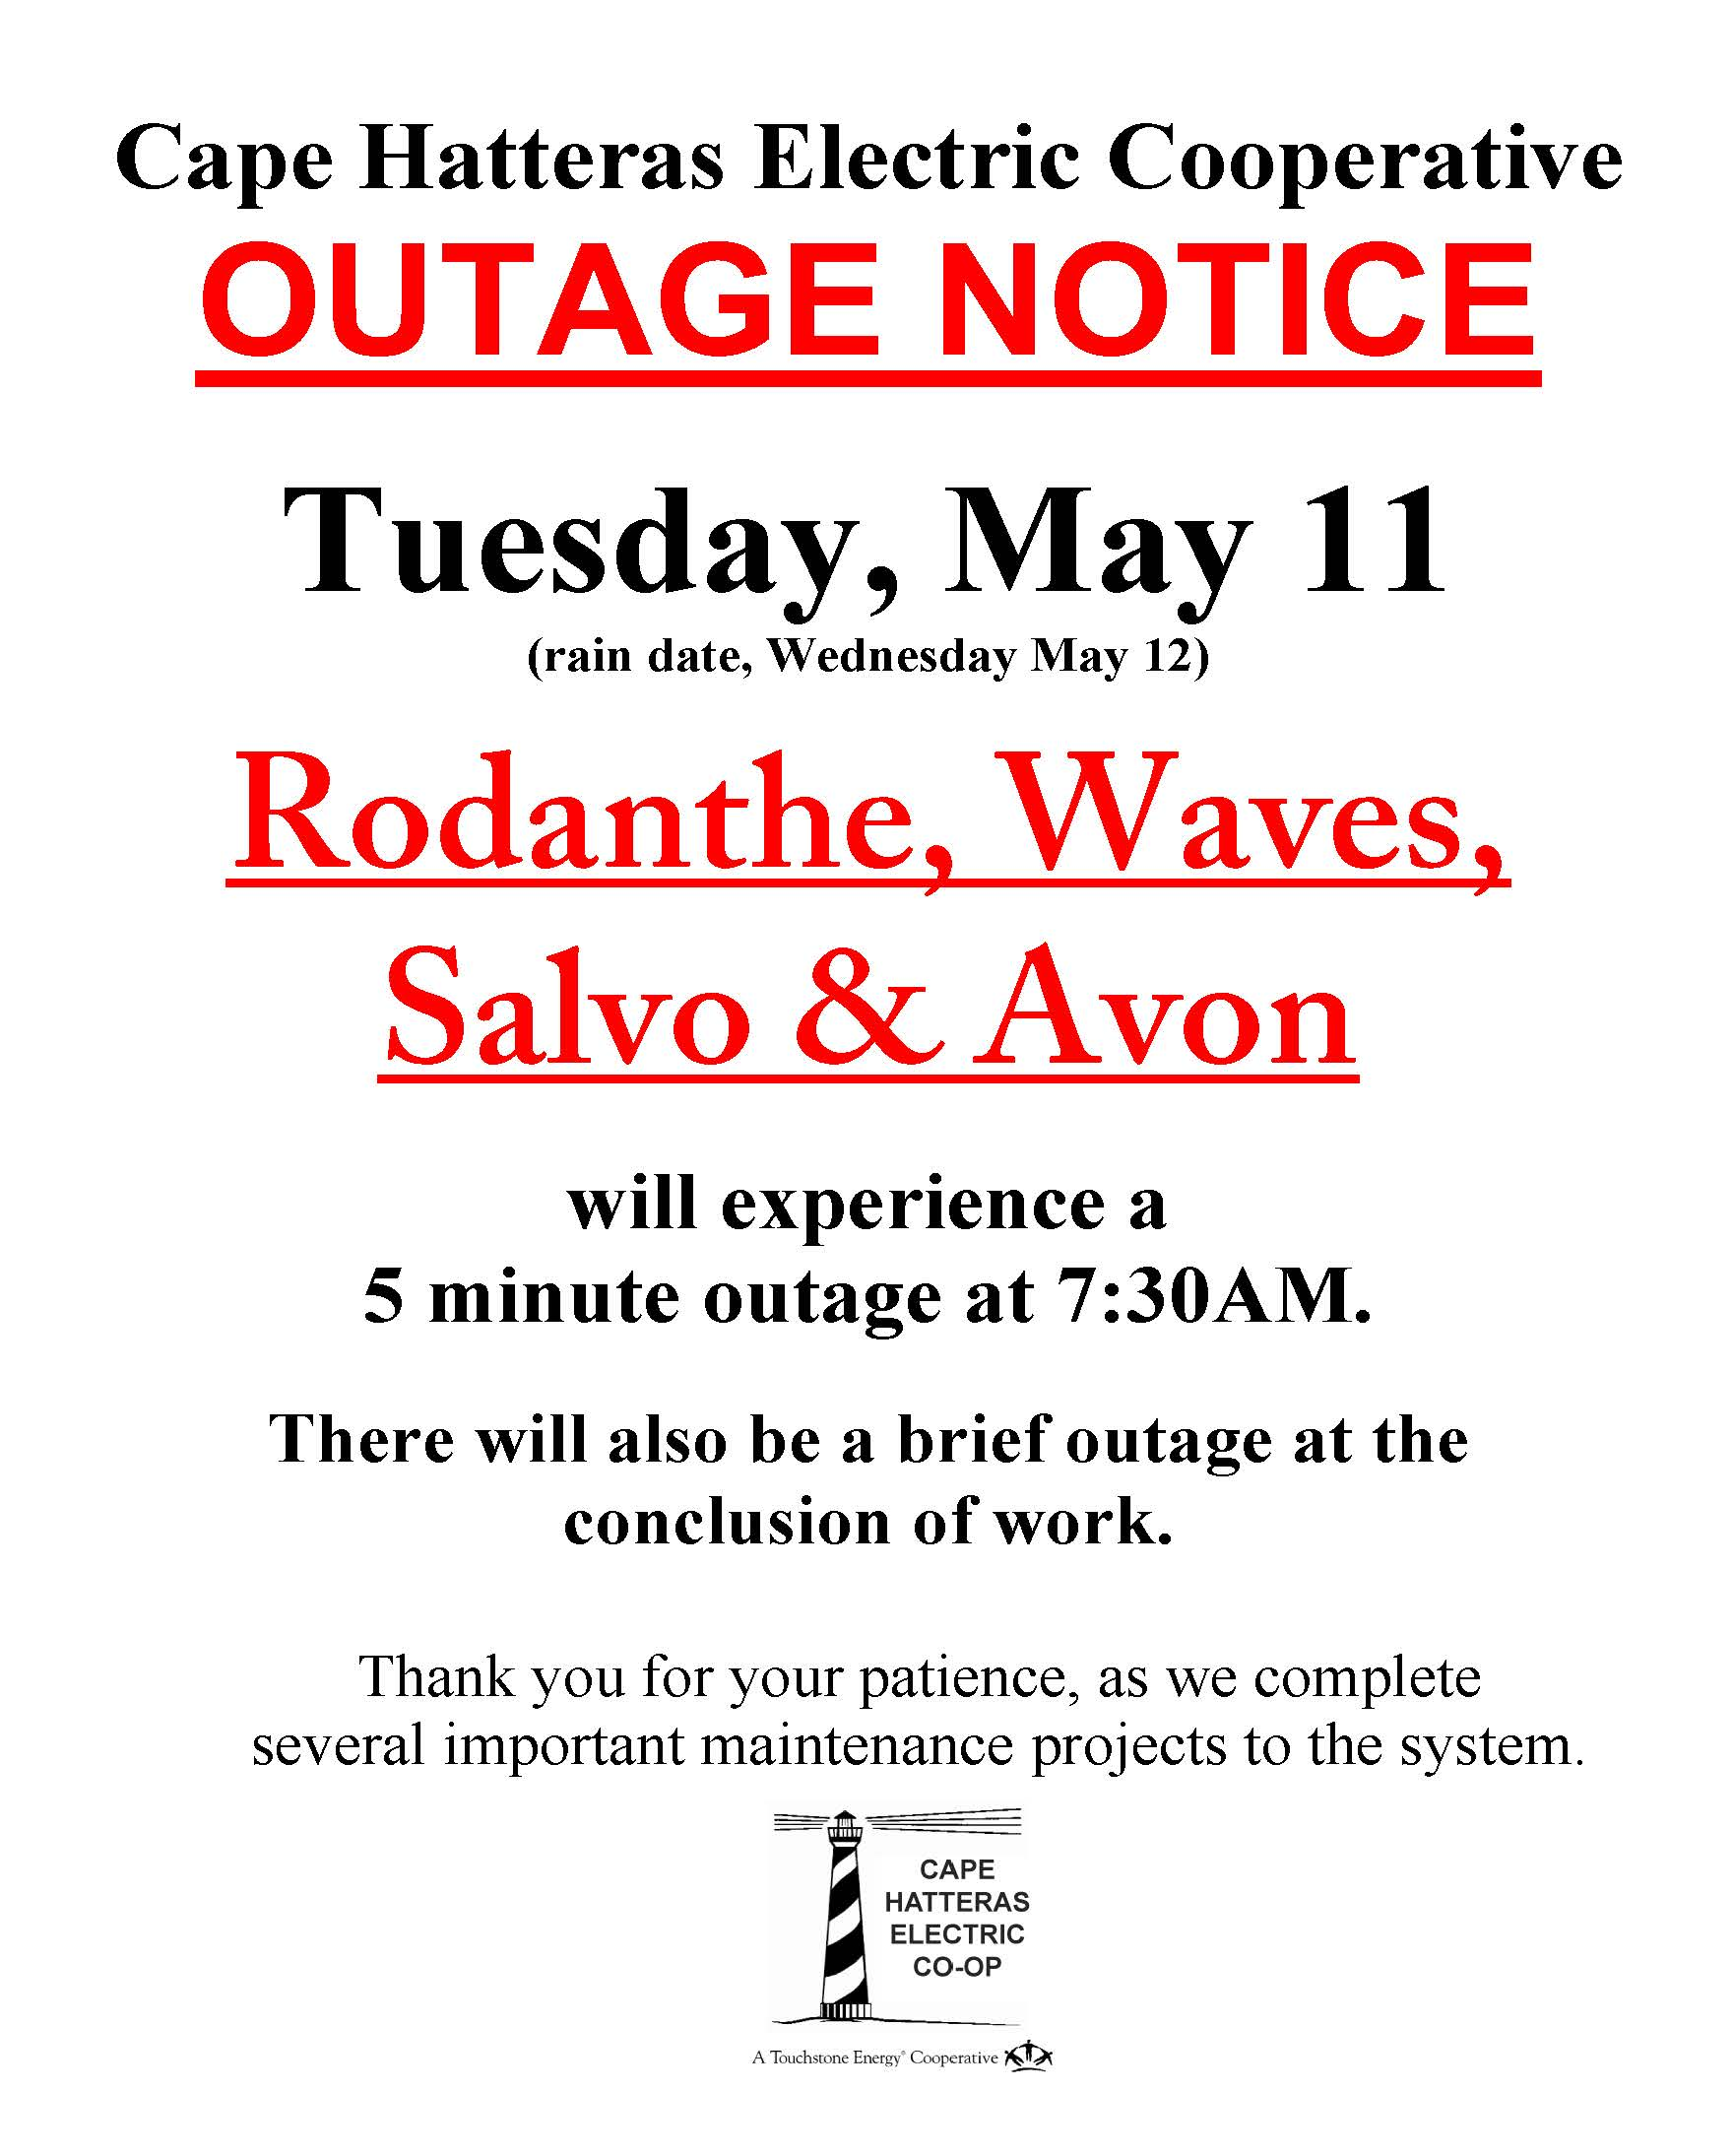 Outage Notice for 5/11/21 Please call 252-995-5616 for details